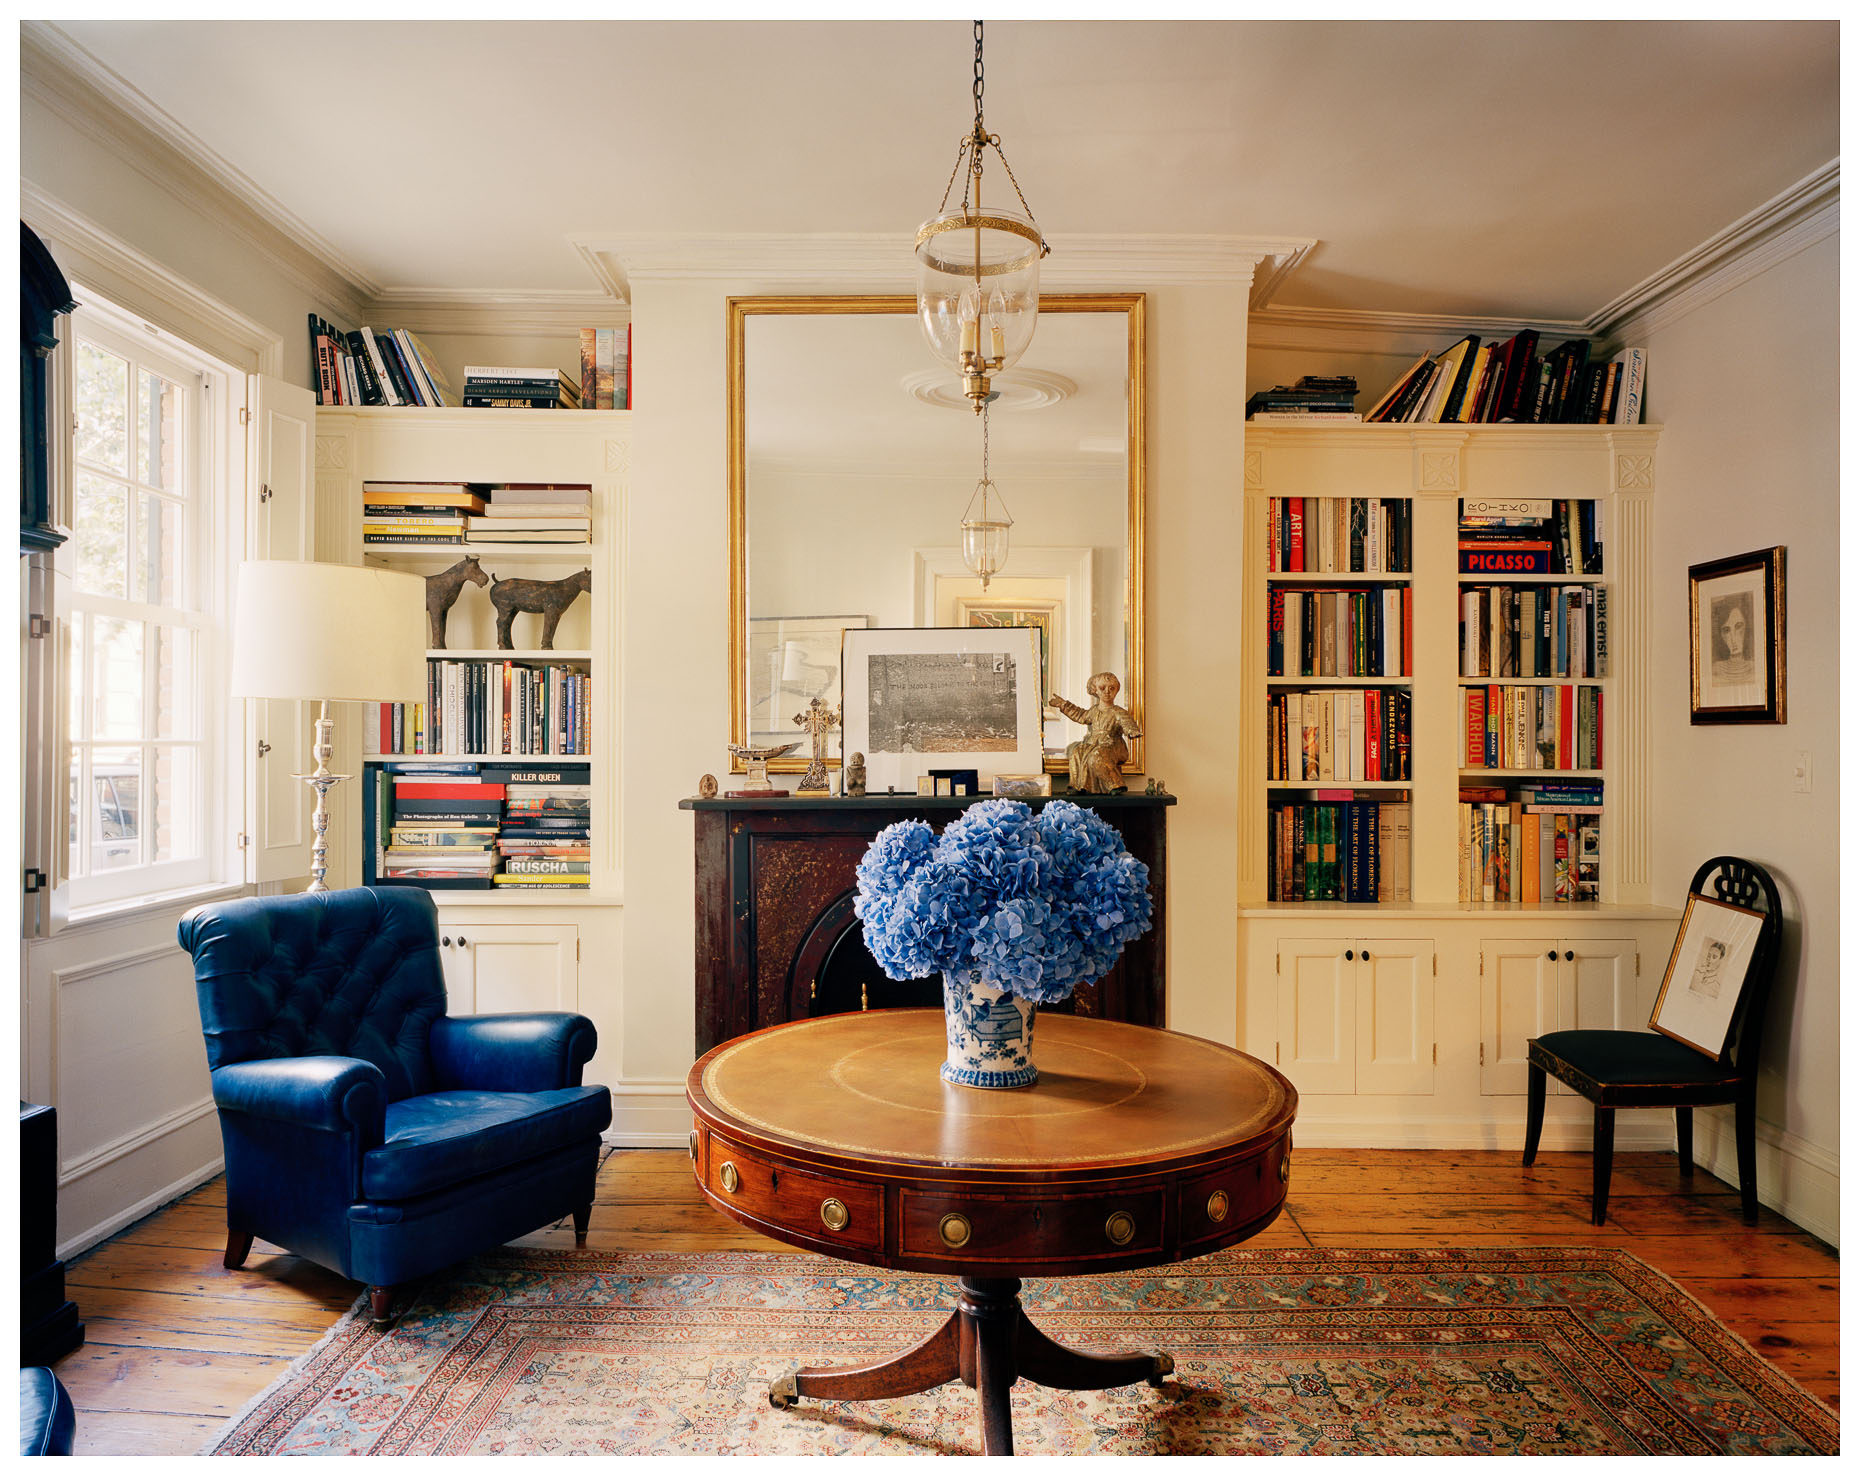 Greenwich Village Interior | Robert Duffy | Brian Park Photo New York | 12